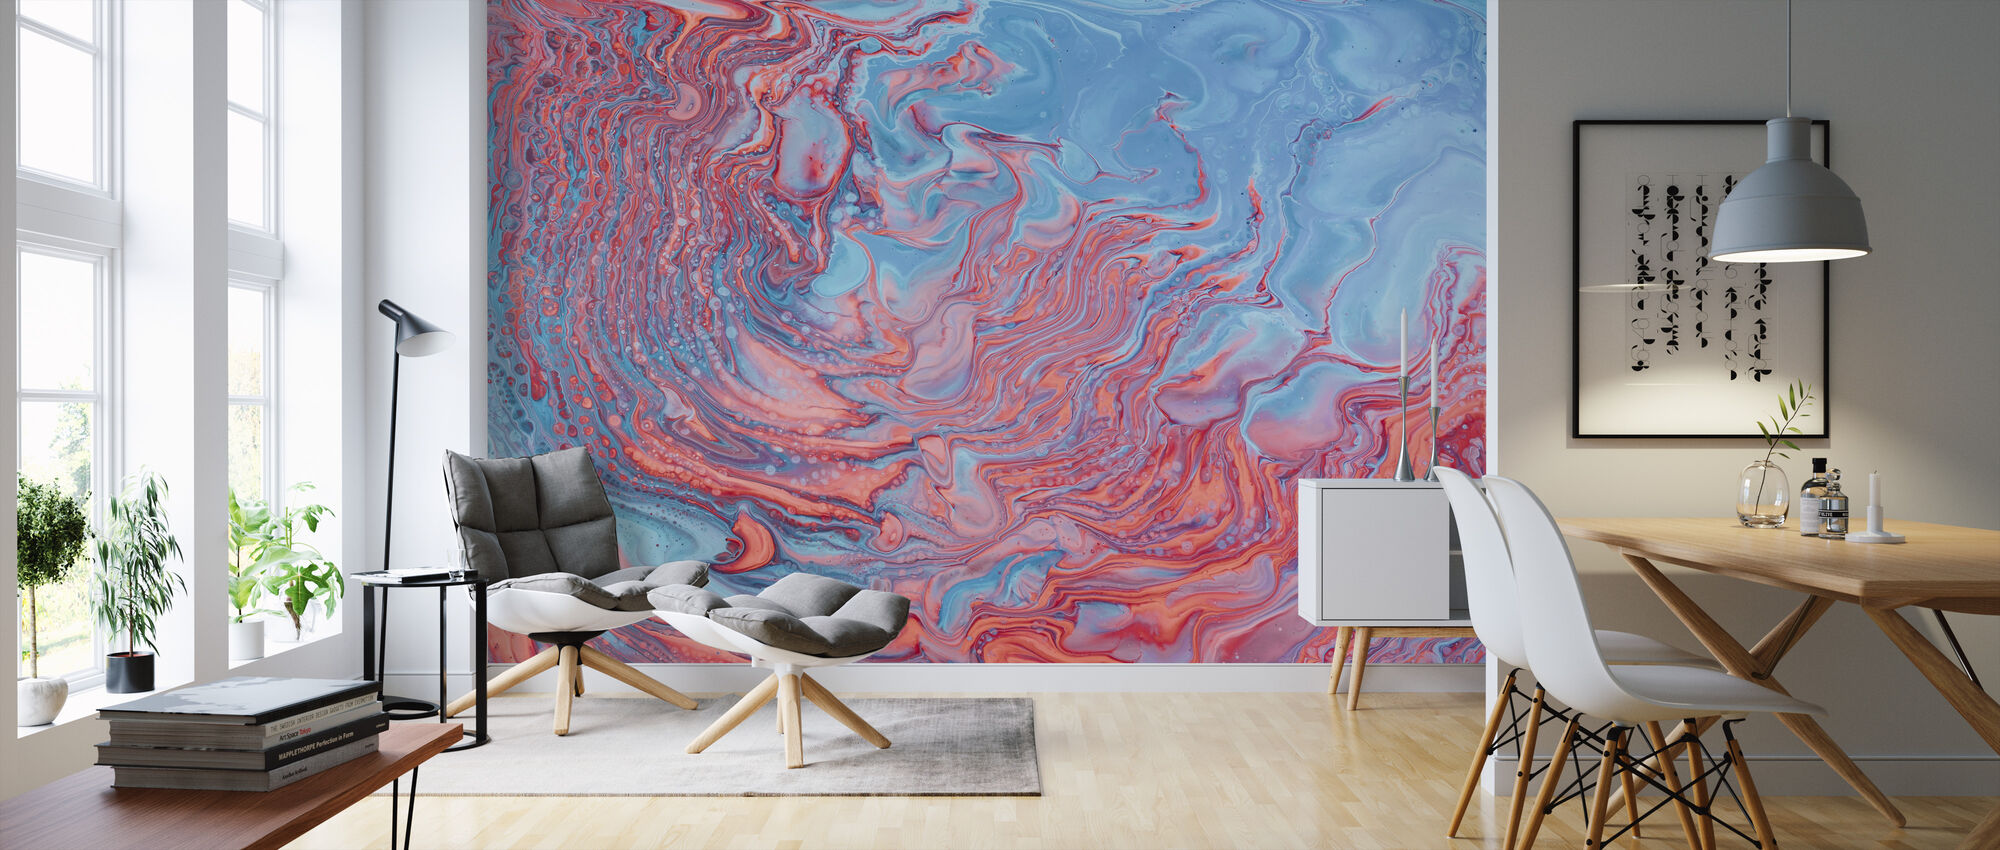 Abstract Painting - Wallpaper - Living Room